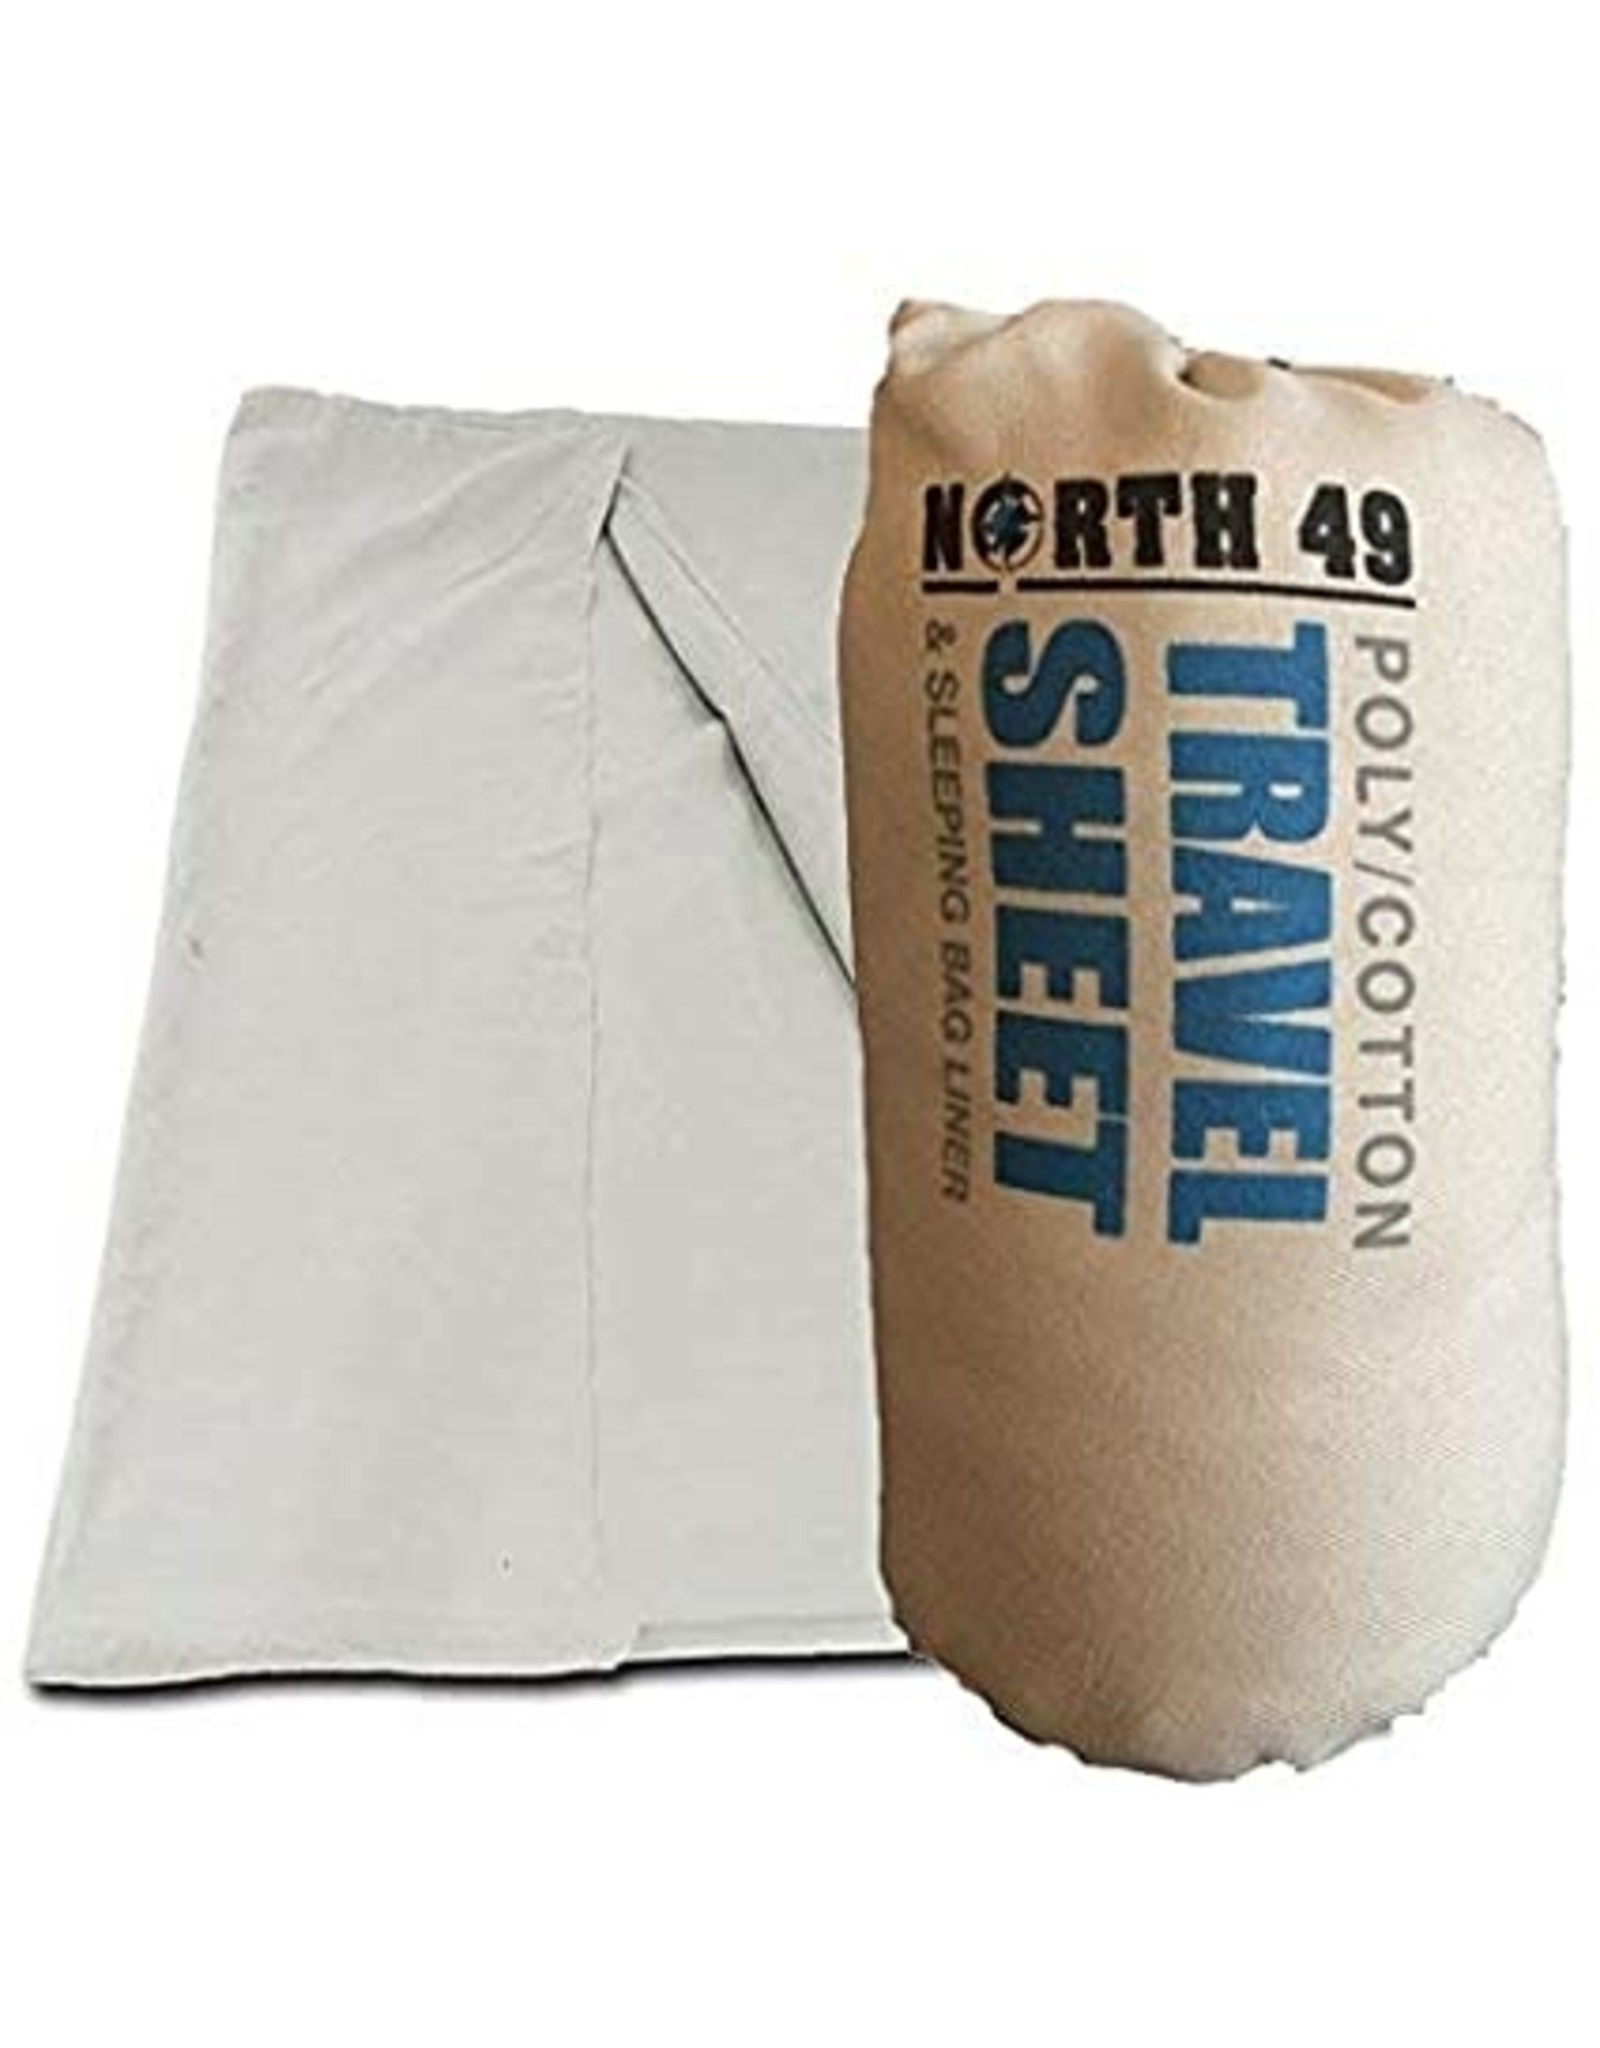 NORTH 49 SLEEPING BAG LINER/HOSTEL BAG